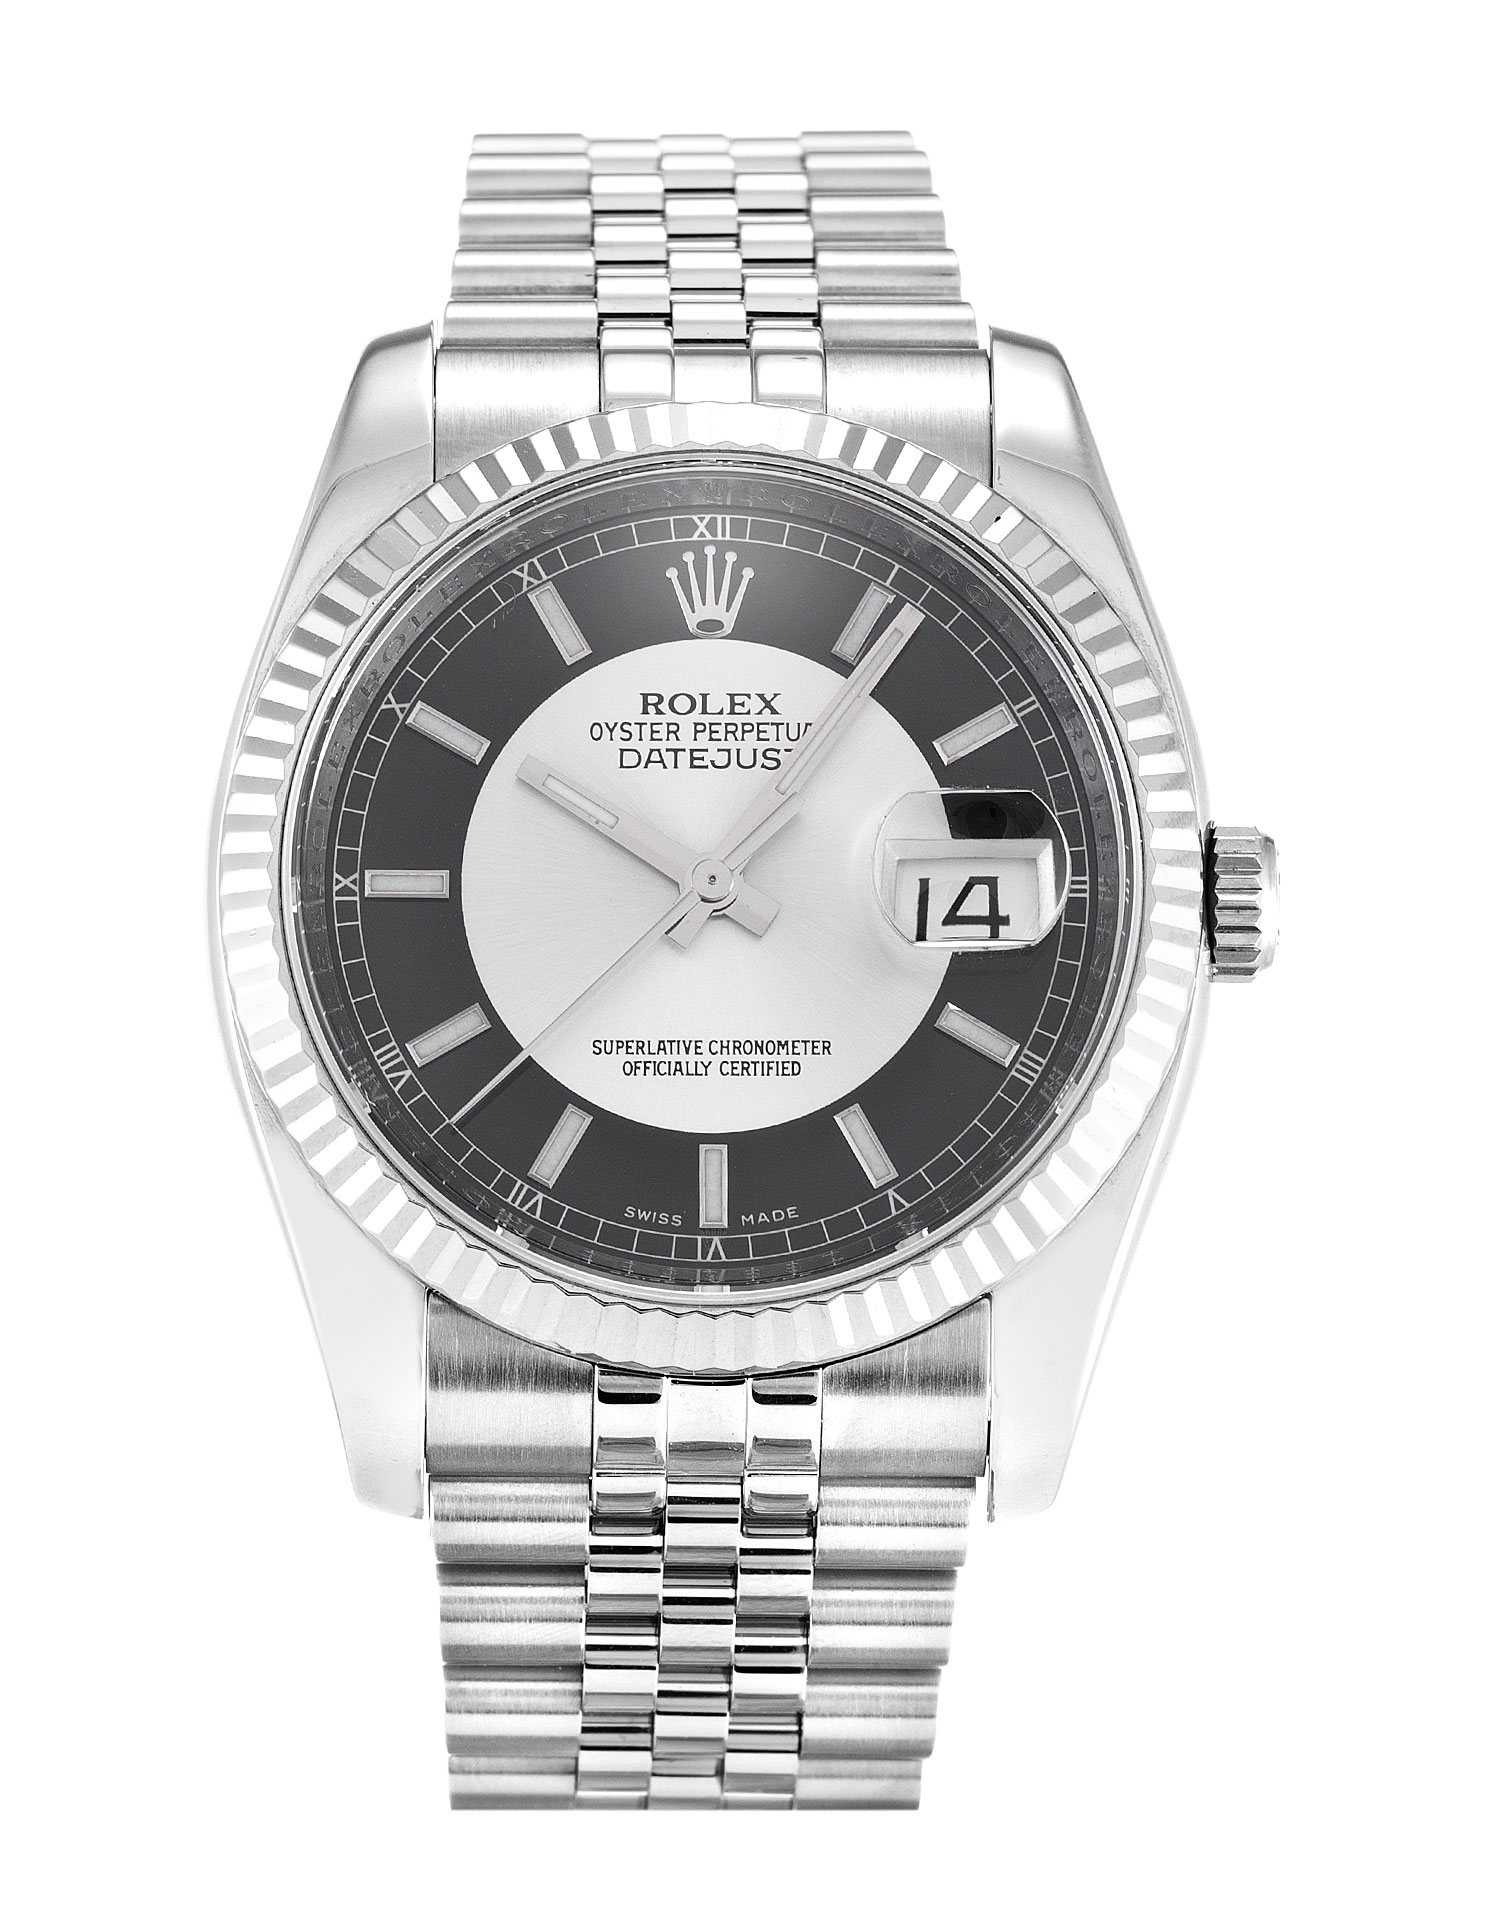 Rolex Datejust 116234 Mens 36 Mm Steel & White Gold Case Automatic Movement – iapac.to